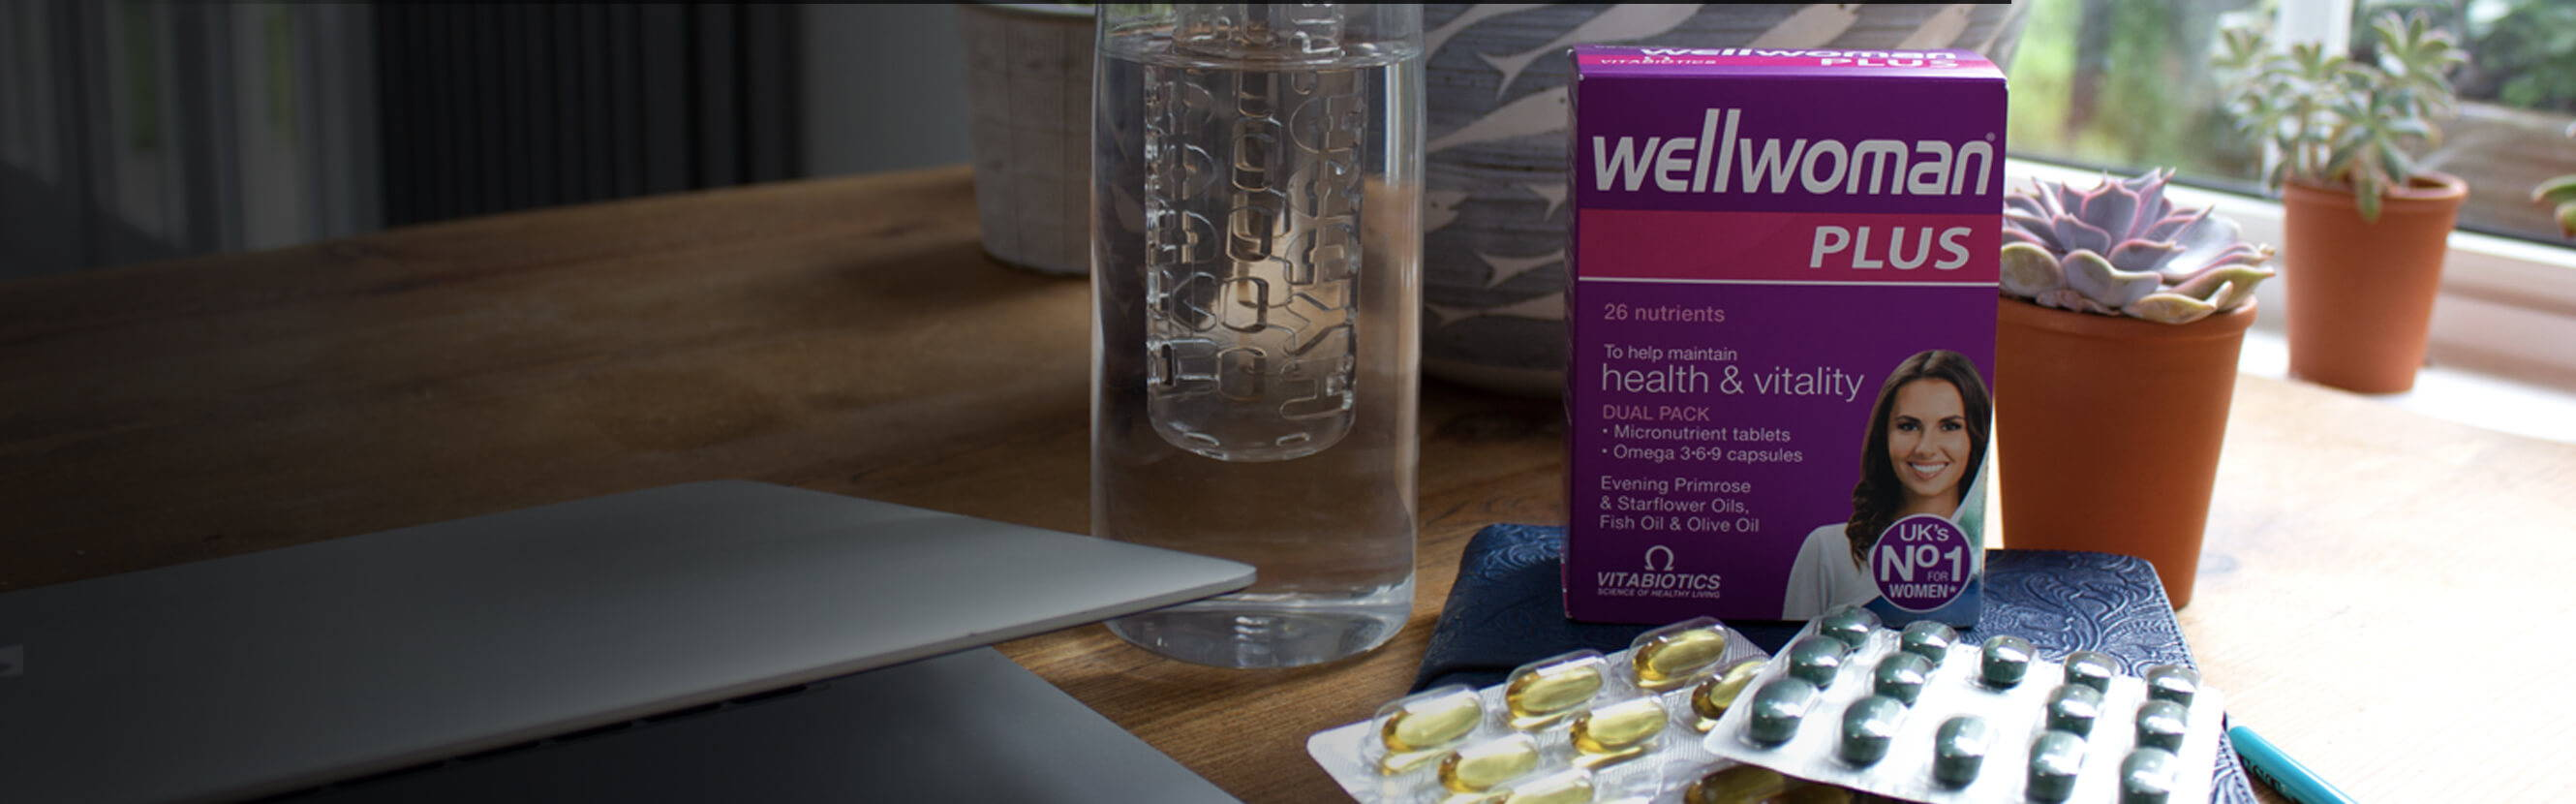 Wellwoman Plus Pack On A Desk